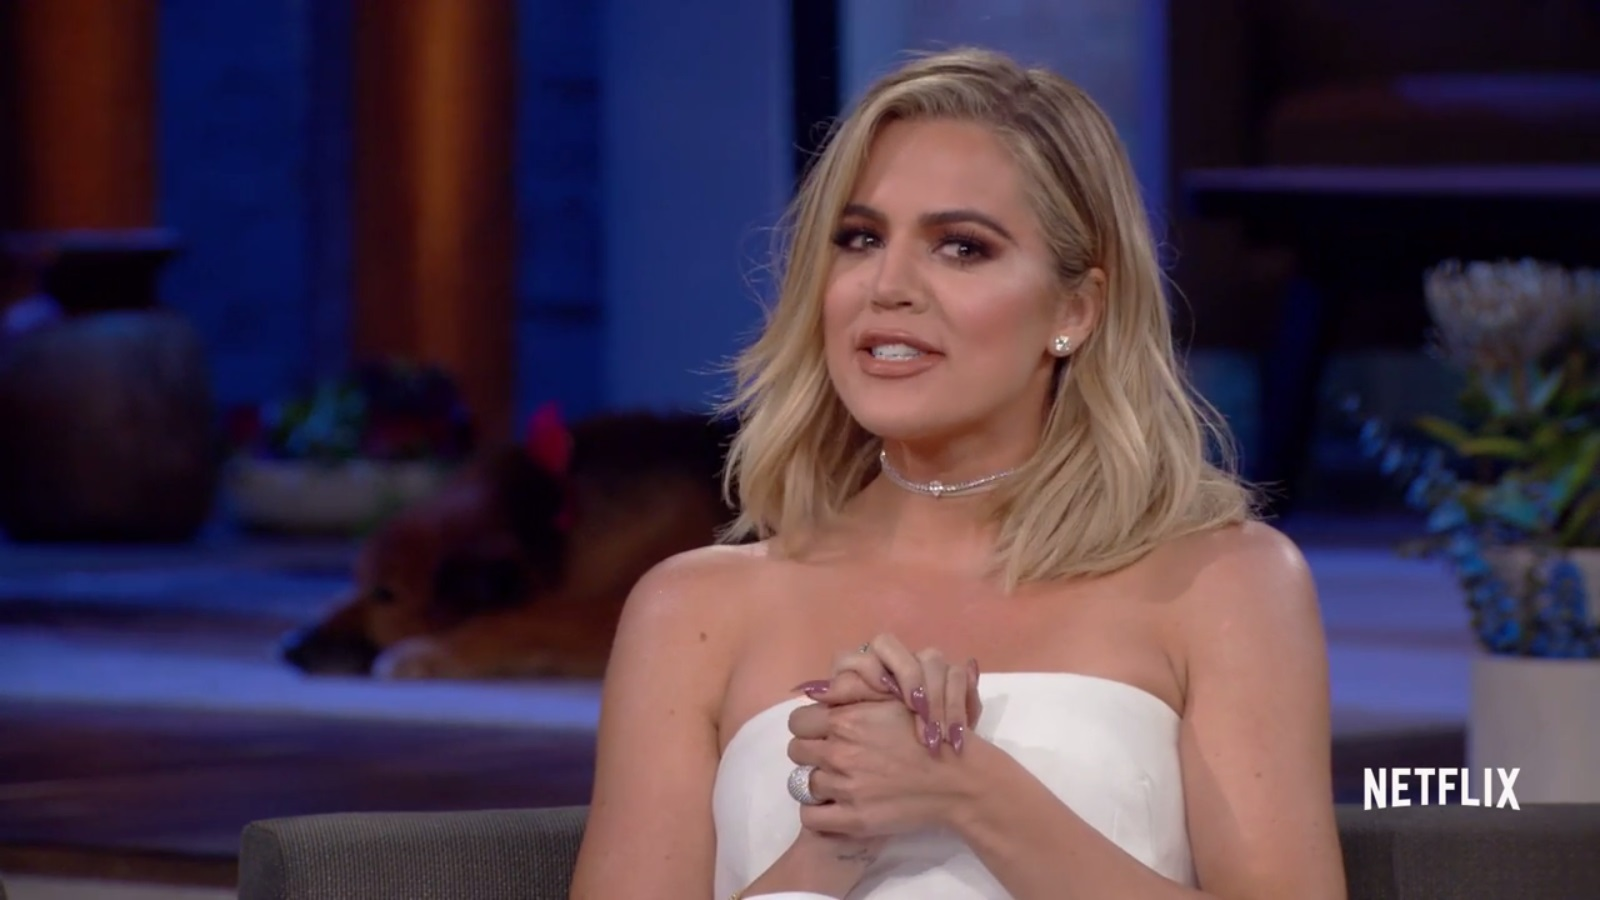 (VIDEO) Khloé  on Chelsea Handler show on Netflix